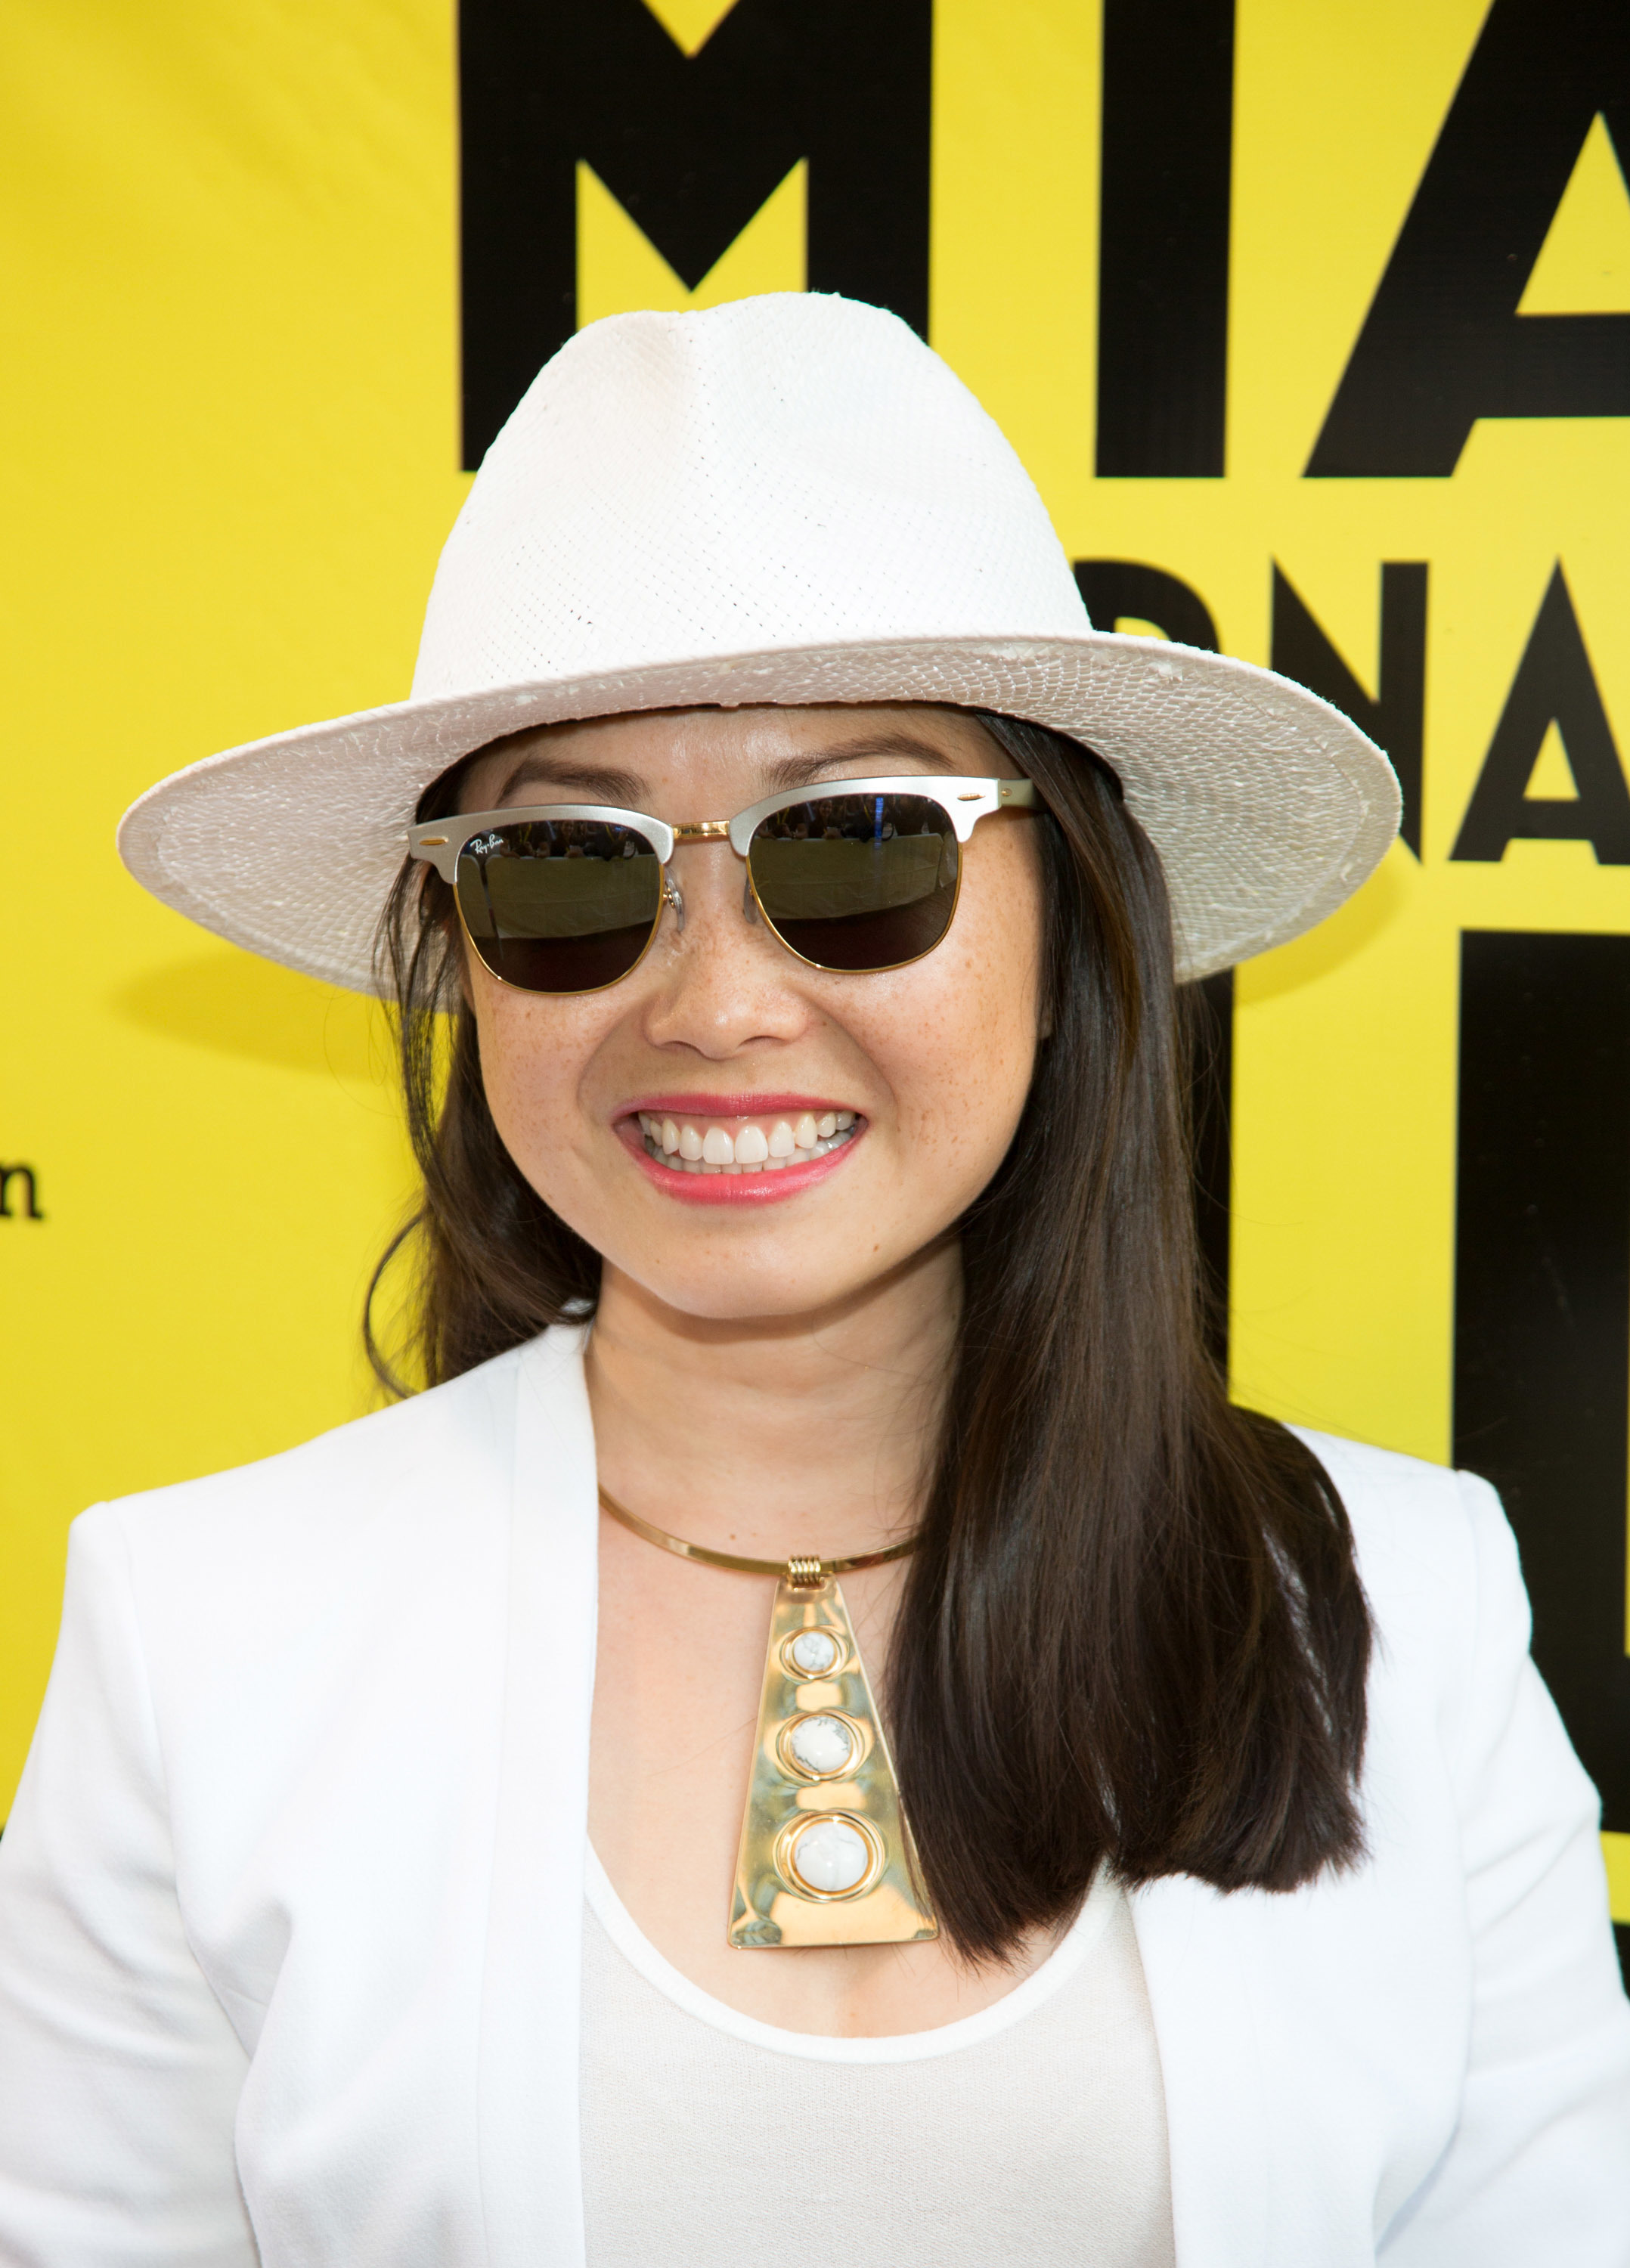 An adult in white clothes, white hat and sunglasses